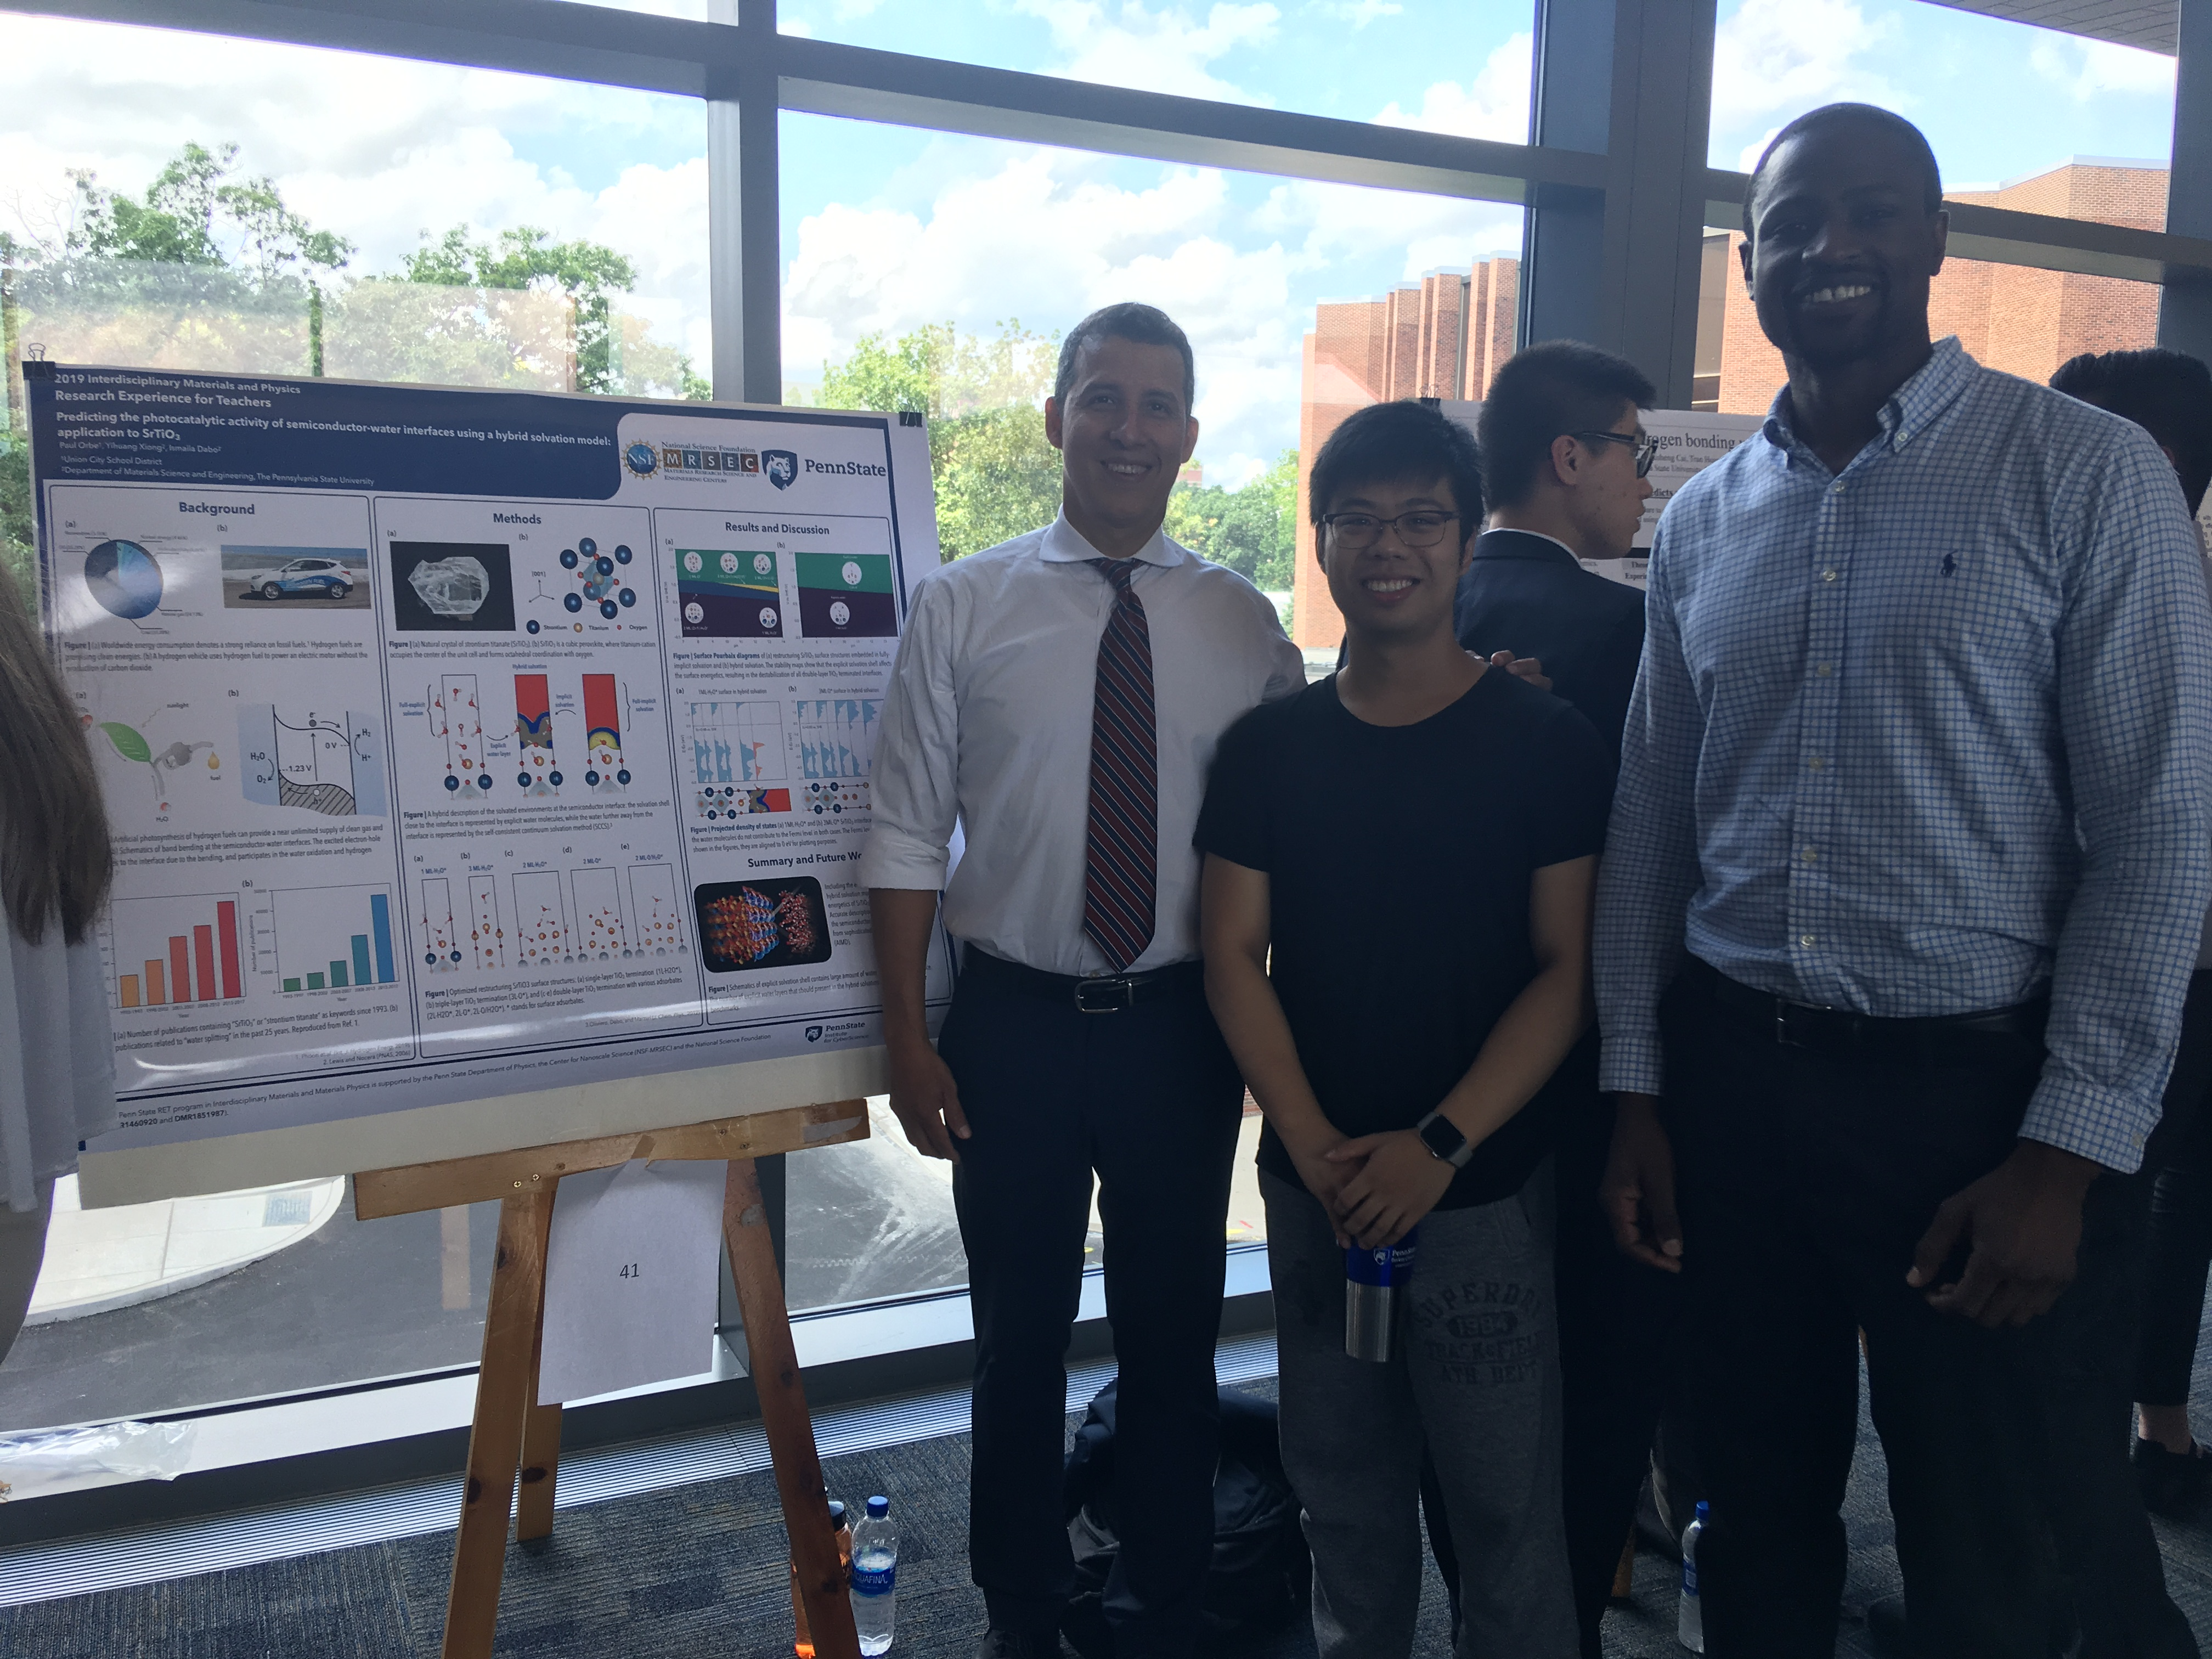 teachers present their research projects at a large symposium with other summer researchers